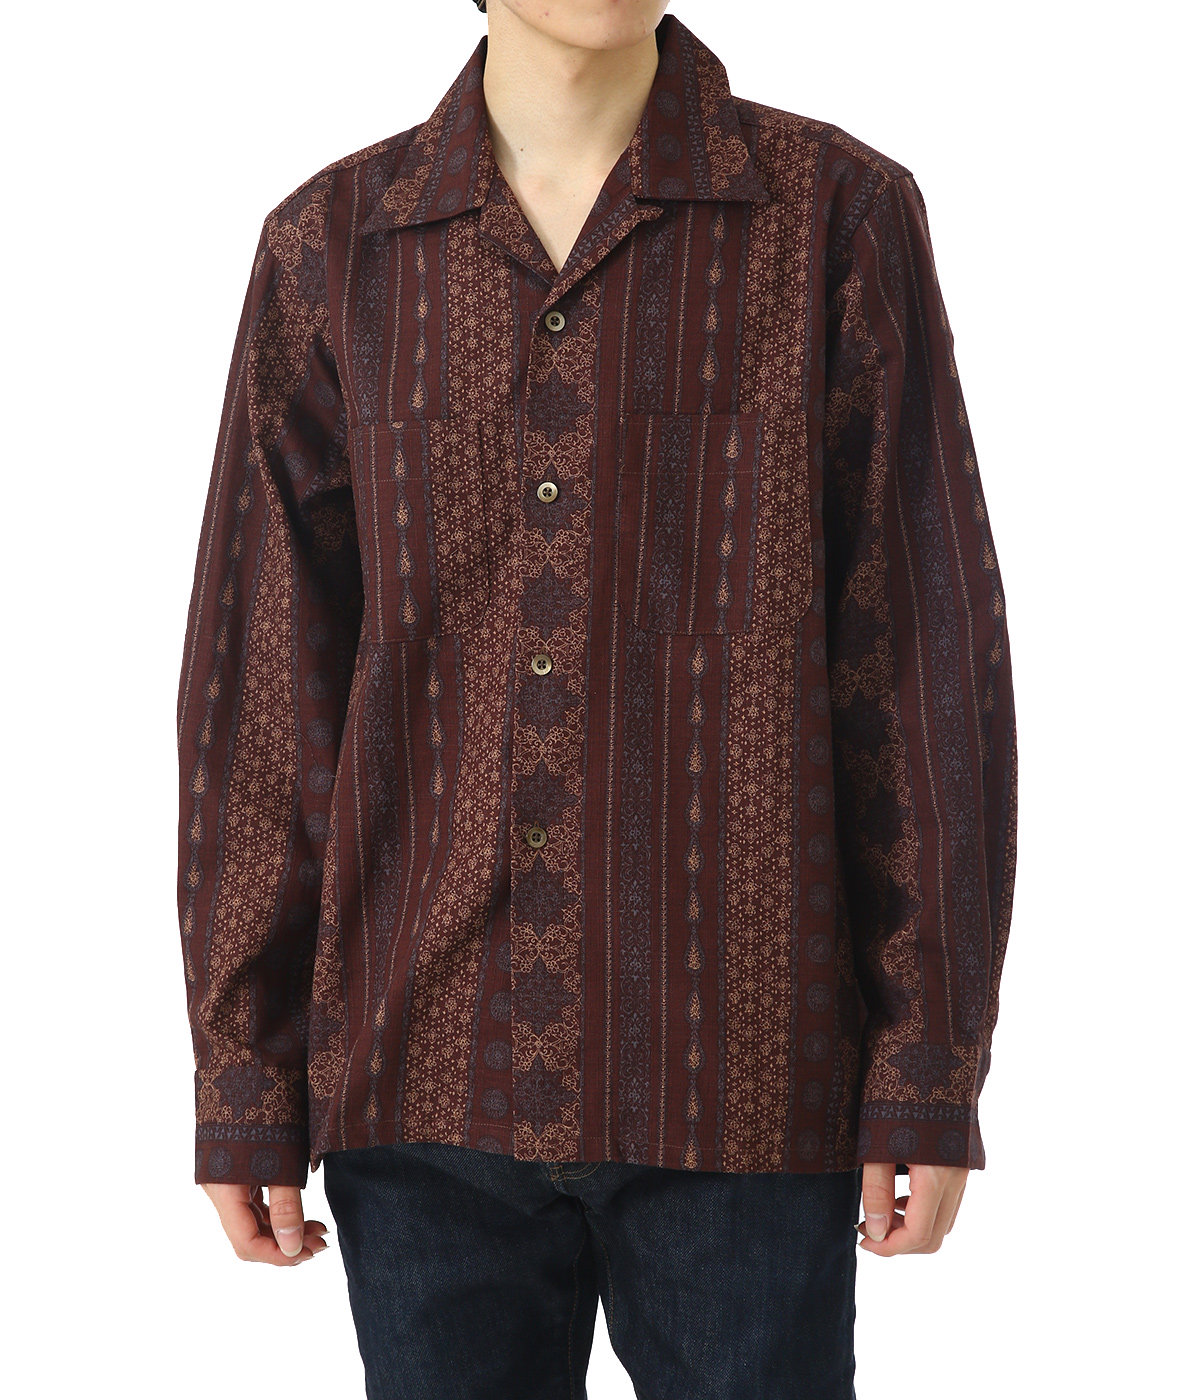 One-up Shirt - C/L Cloth / Arabesque